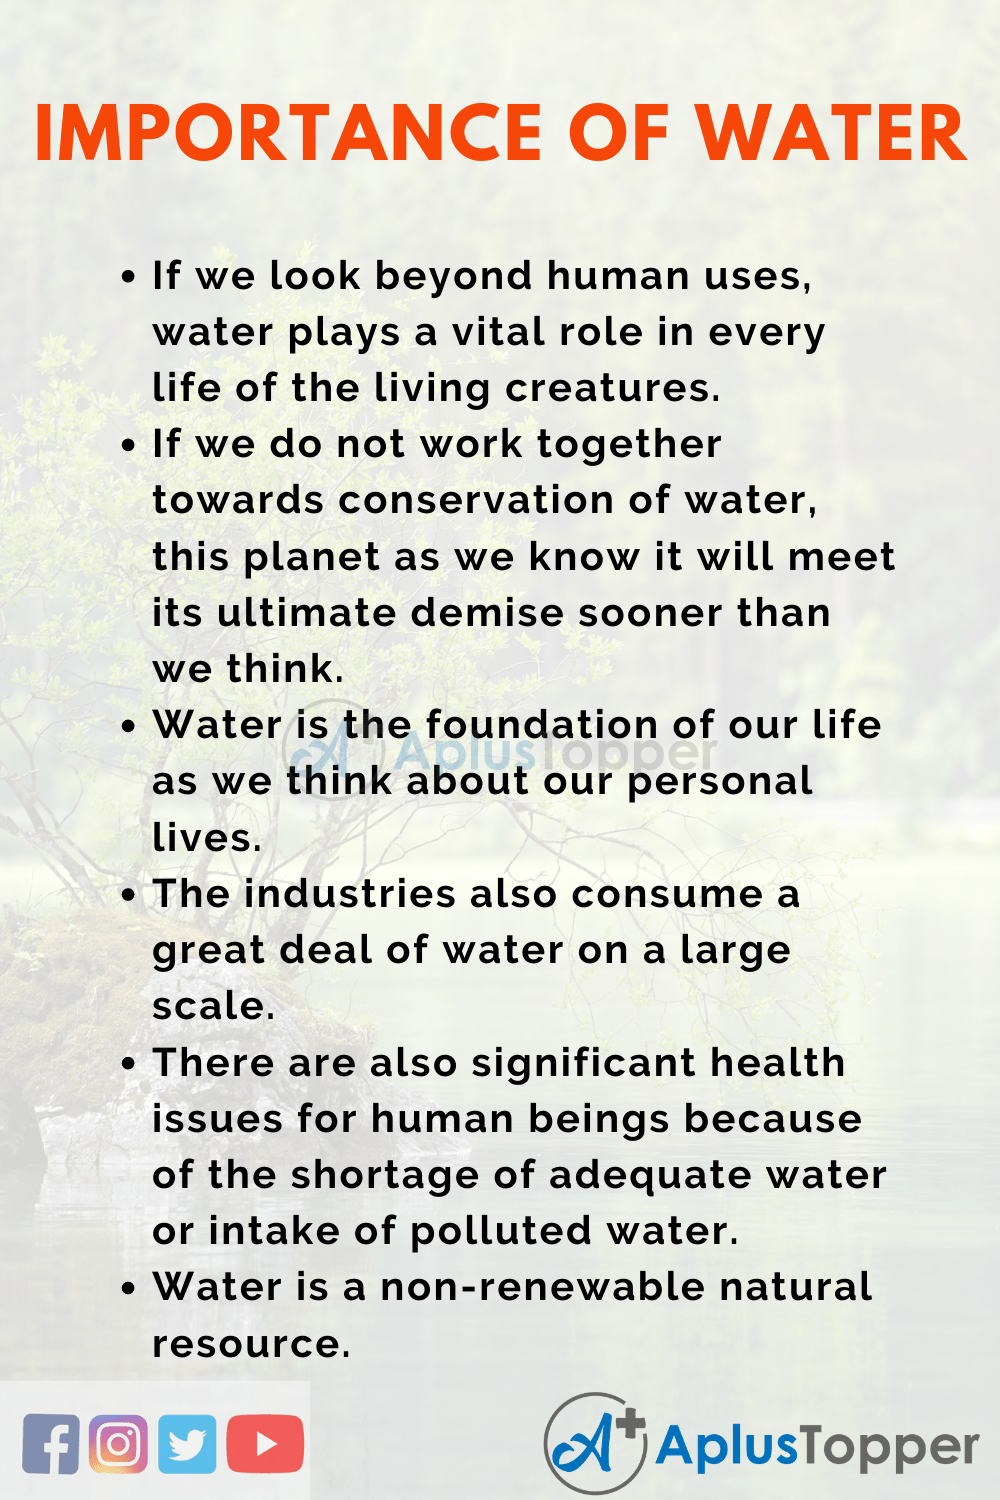 Essay about Importance of Water